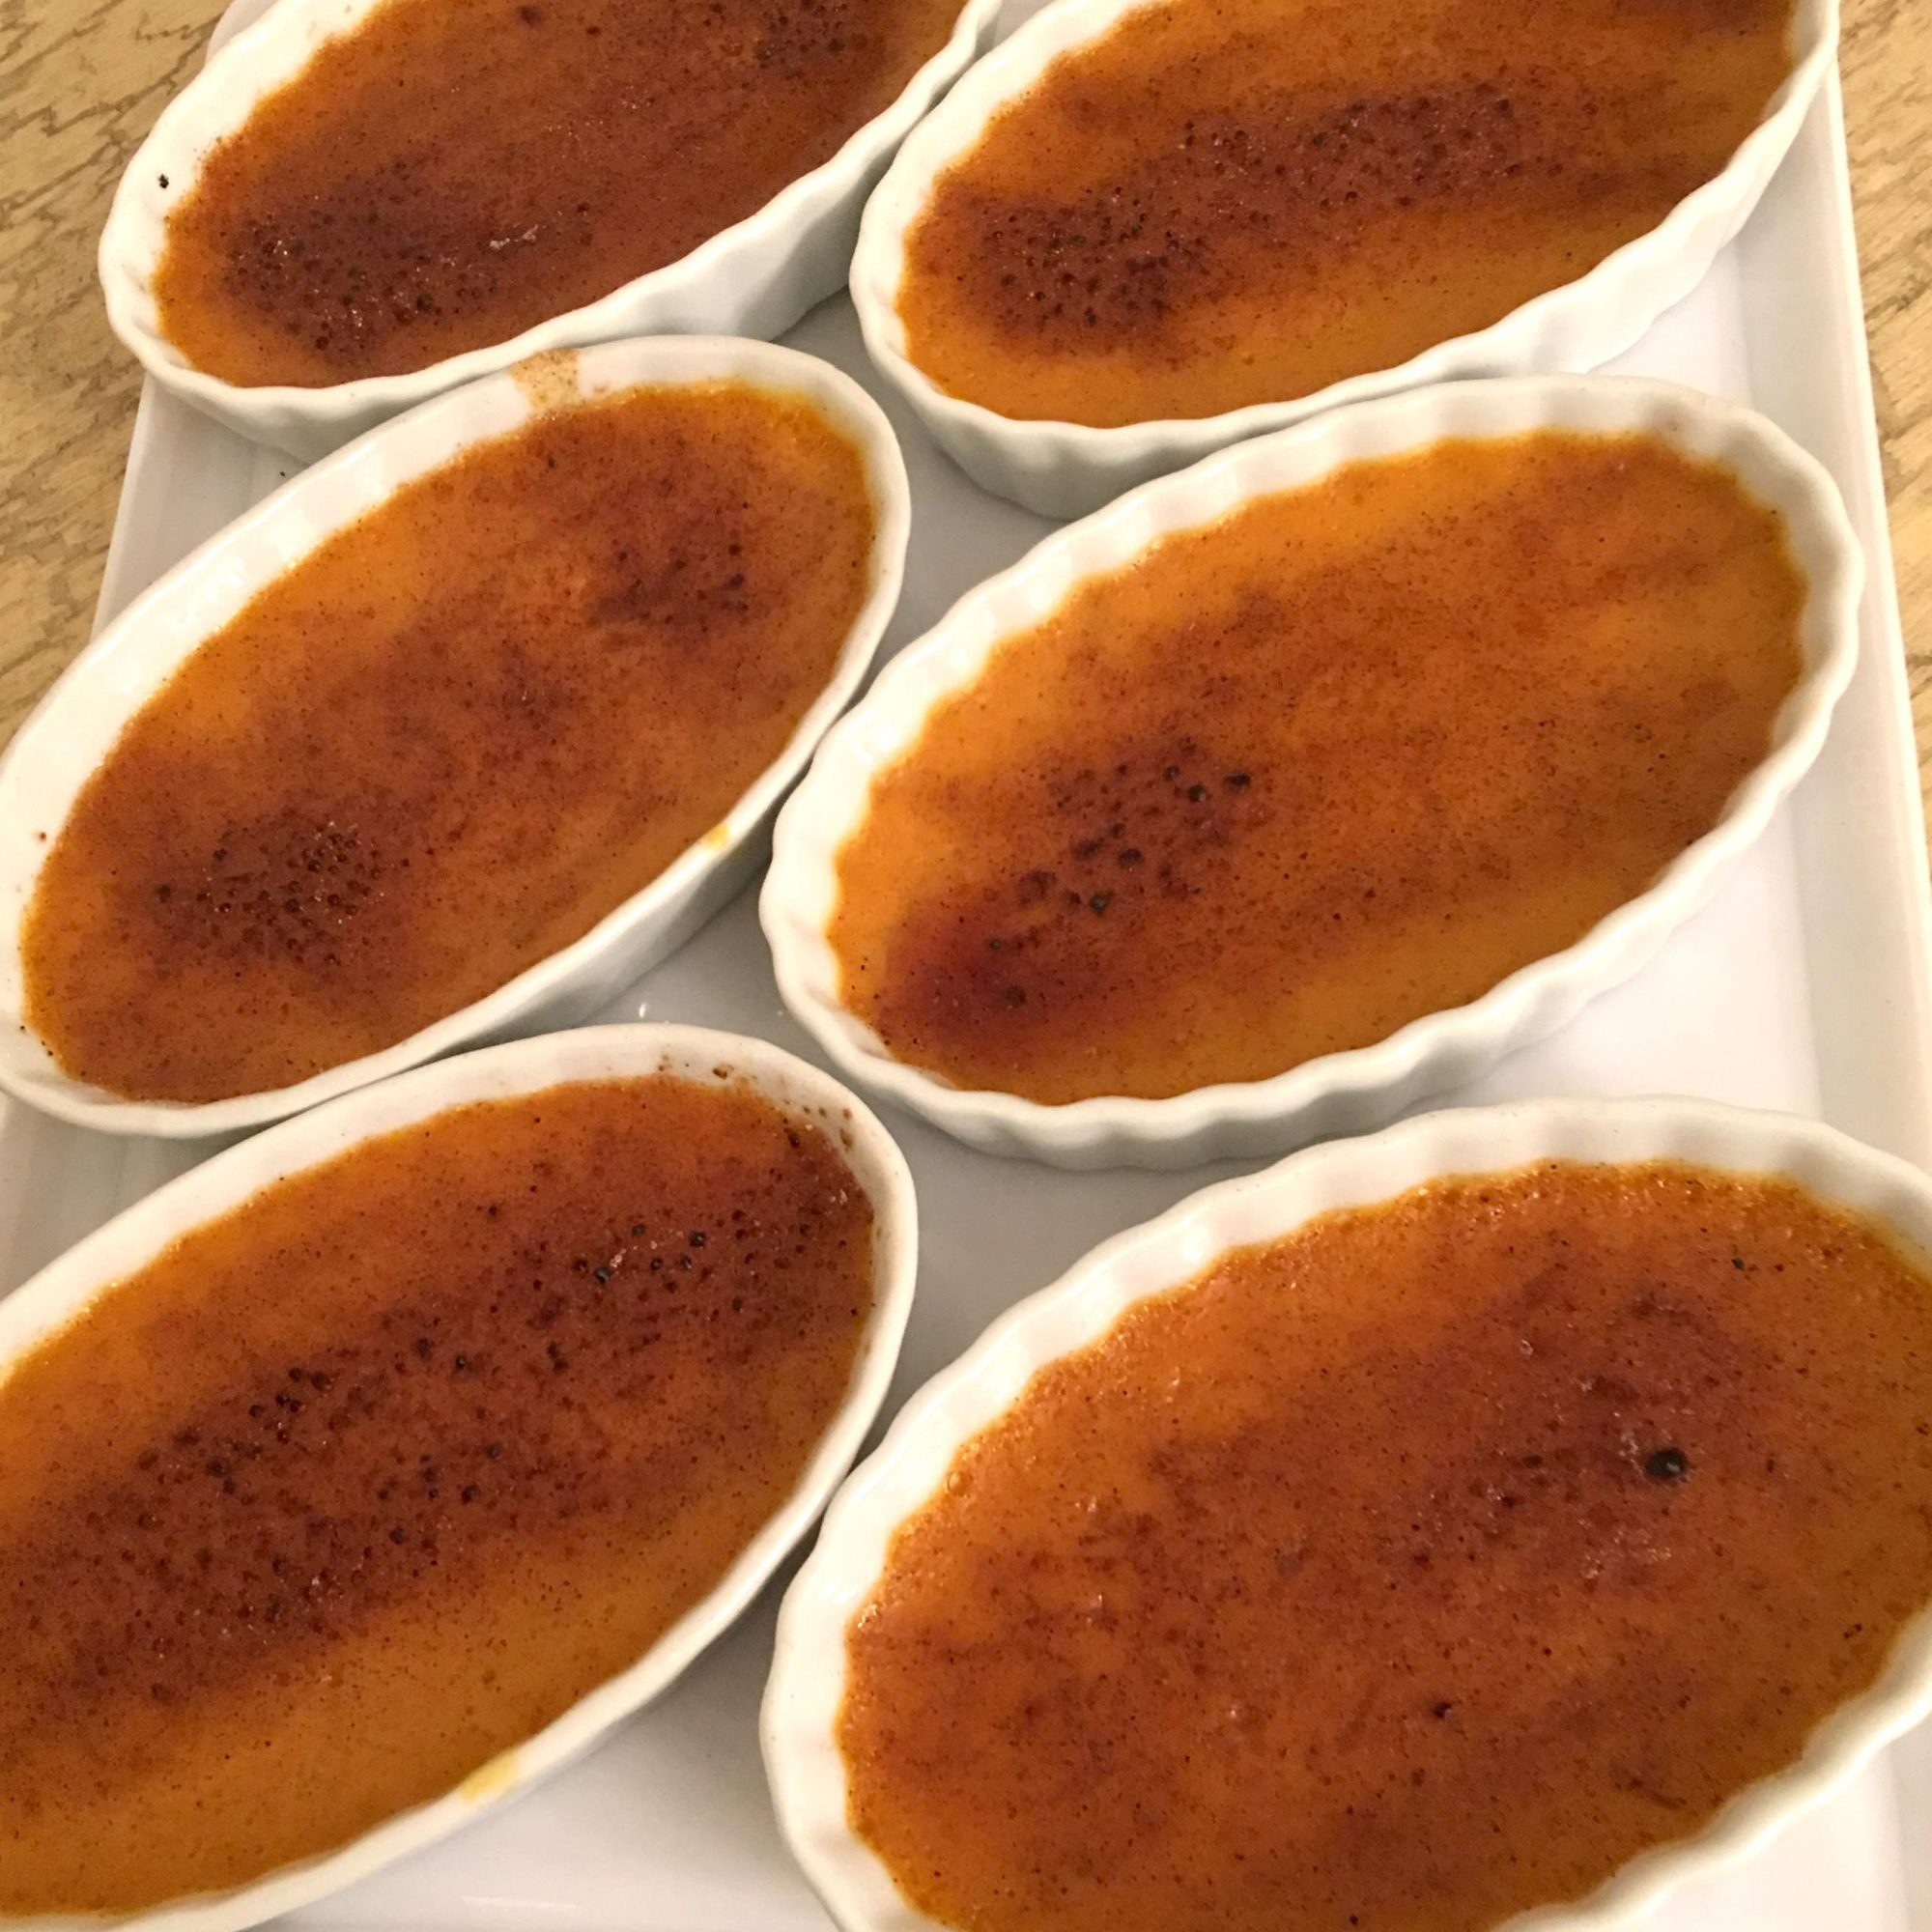 Six servings of Chef John's Pumpkin Creme Brulee